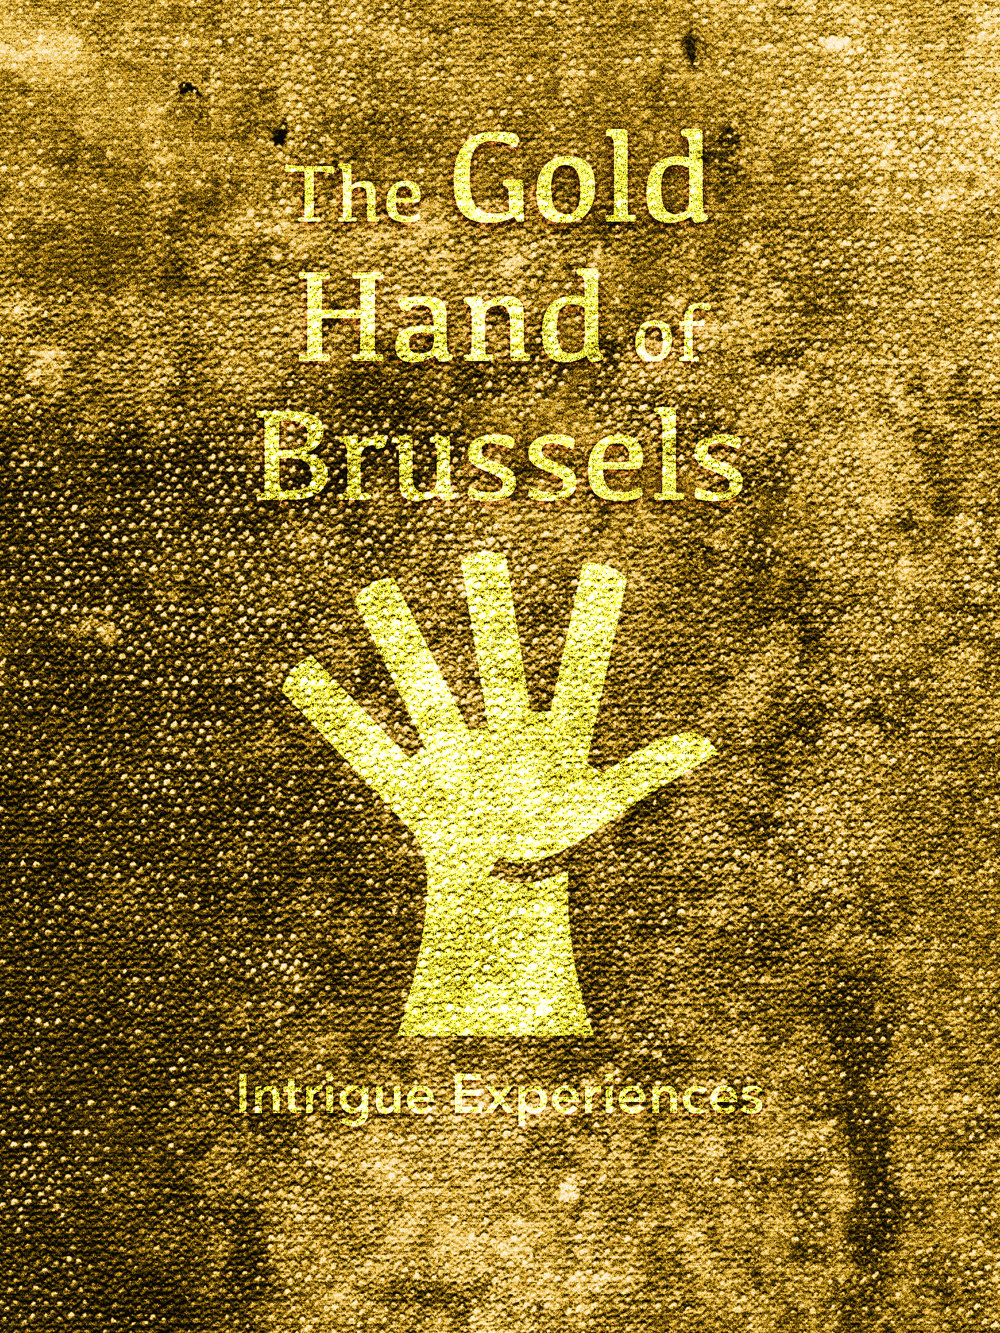 The Gold Hand of Brussels was originally produced for the Landmark Theater in Syracuse, NY. A valuable artifact has been stolen, and the staff that were in charge of it must be interviewed to learn more. If you are lucky, maybe you'll even find the artifact yourself.  This story is available for additional bookings. Contact us if interested.